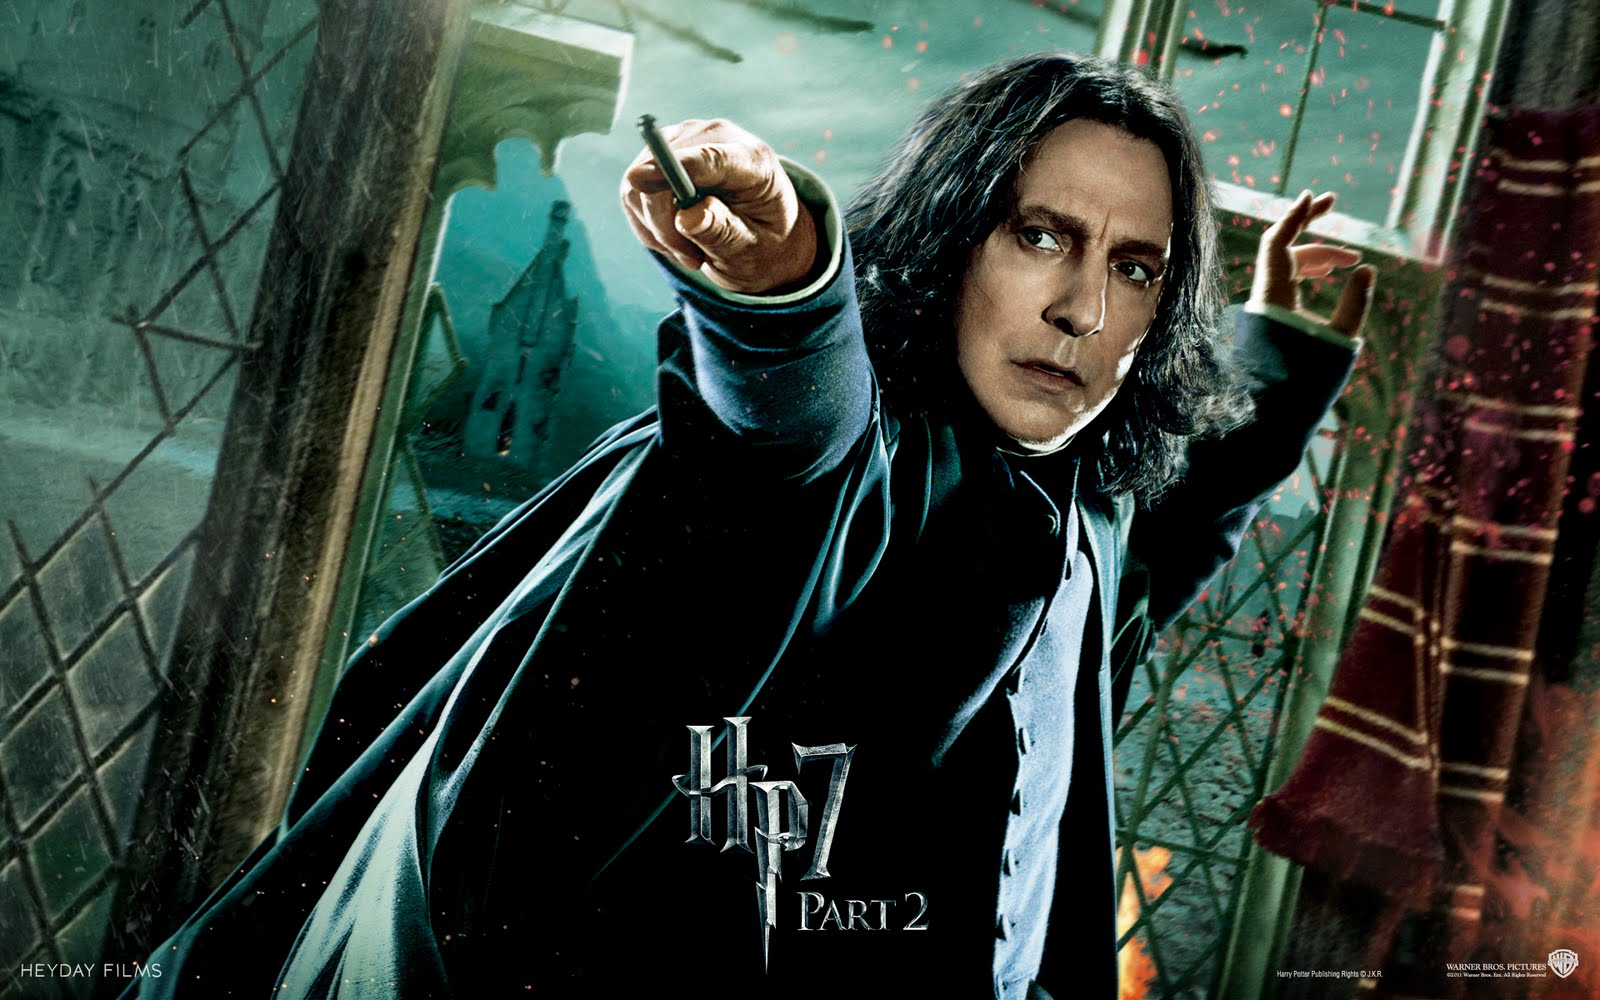 http://3.bp.blogspot.com/-4Jzm9JbbC6w/TieaXMsZe3I/AAAAAAAACGU/U4wQM1Rf8T4/s1600/harry_potter_and_the_deathly_hallows_snape_1920x1200.jpg